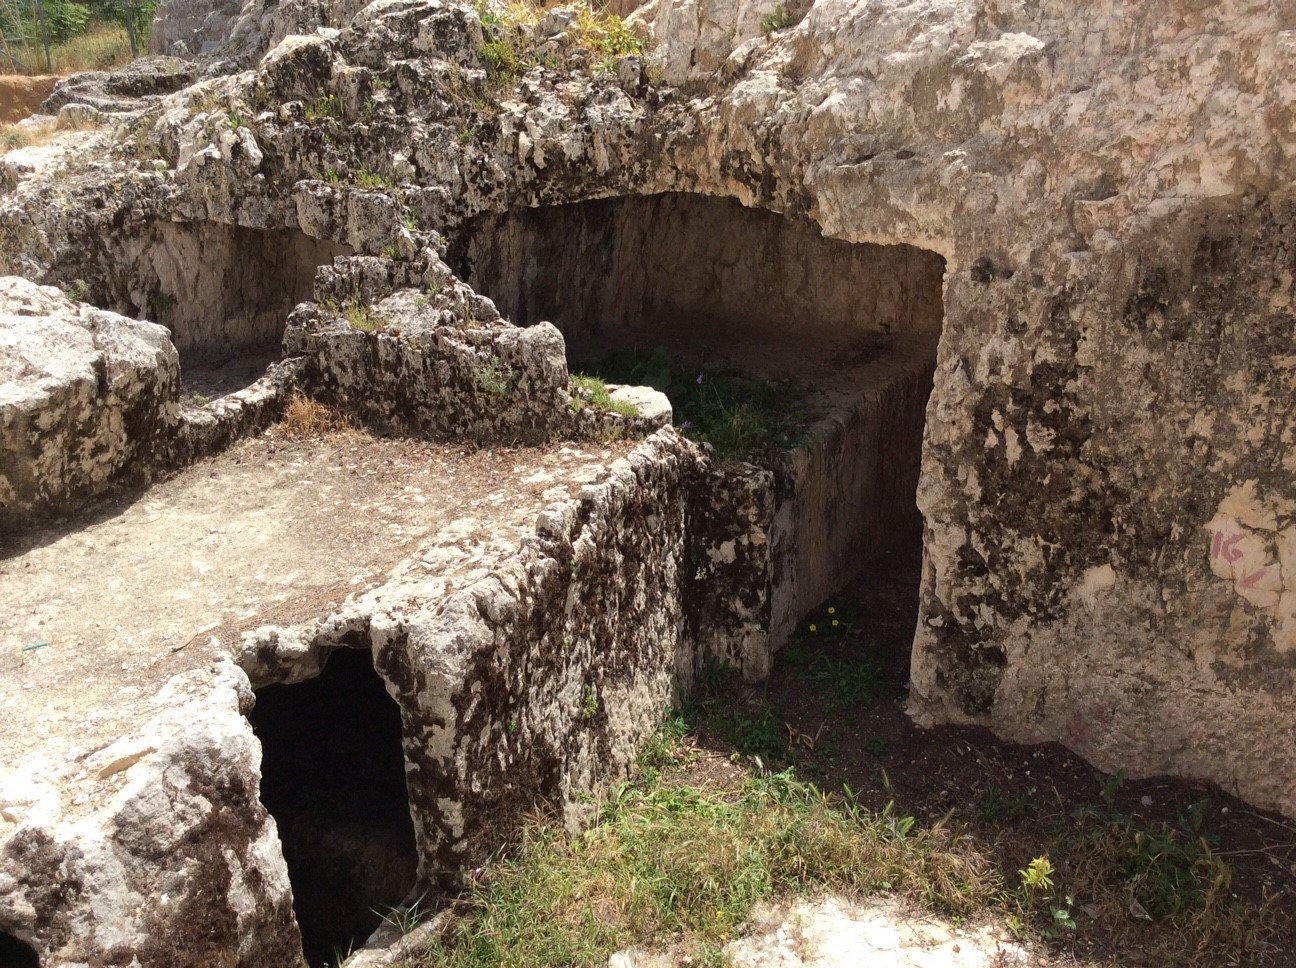 Burial caves from the First Temple Period (960 B.C.–586 B.C.) on the hillside next to St. Andrew's Scots Memorial Church, Jerusalem.